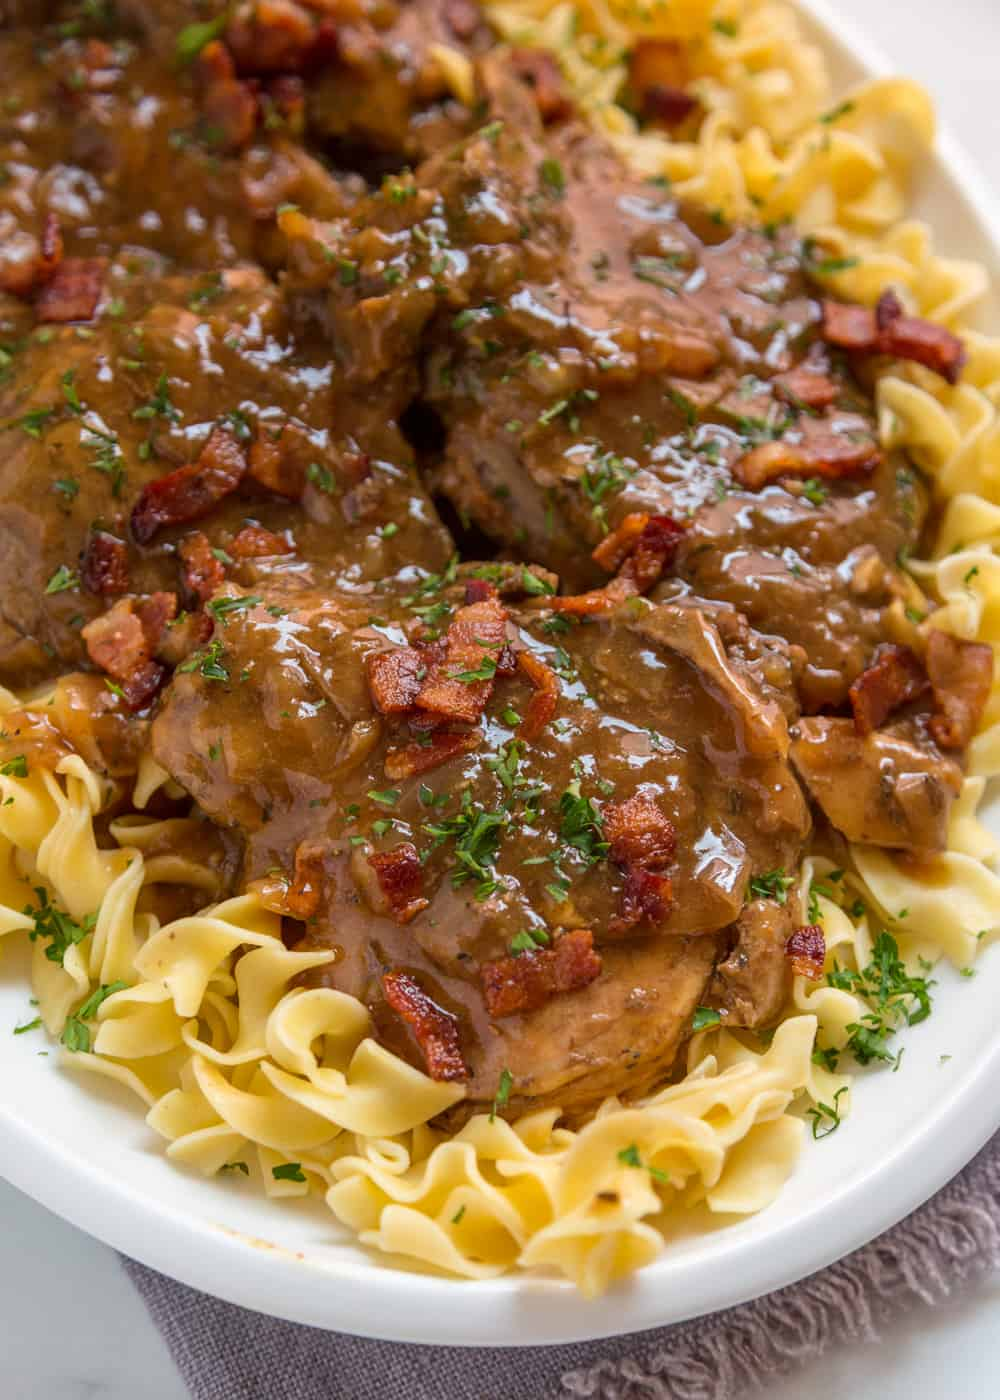 A close up of pork chops with bacon gravy on noodles